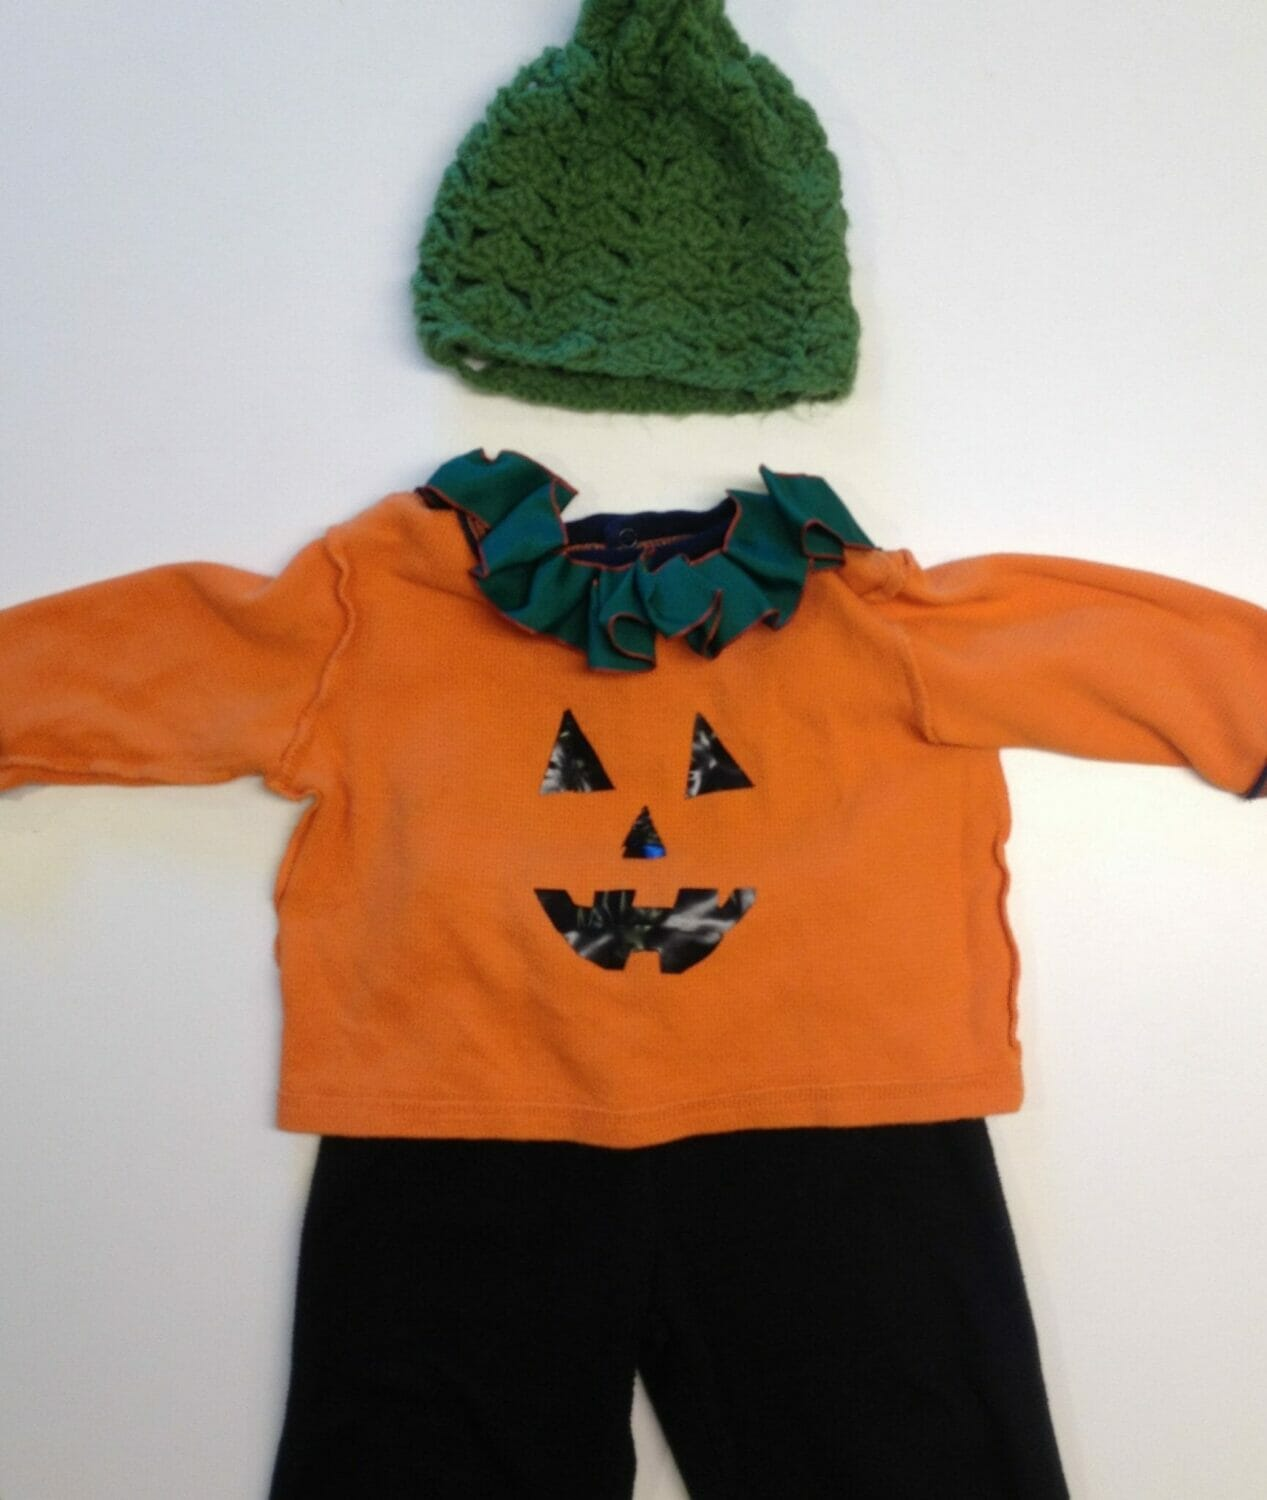 DIY Halloween Costumes: Easy-Peasy Jack-o-Lantern